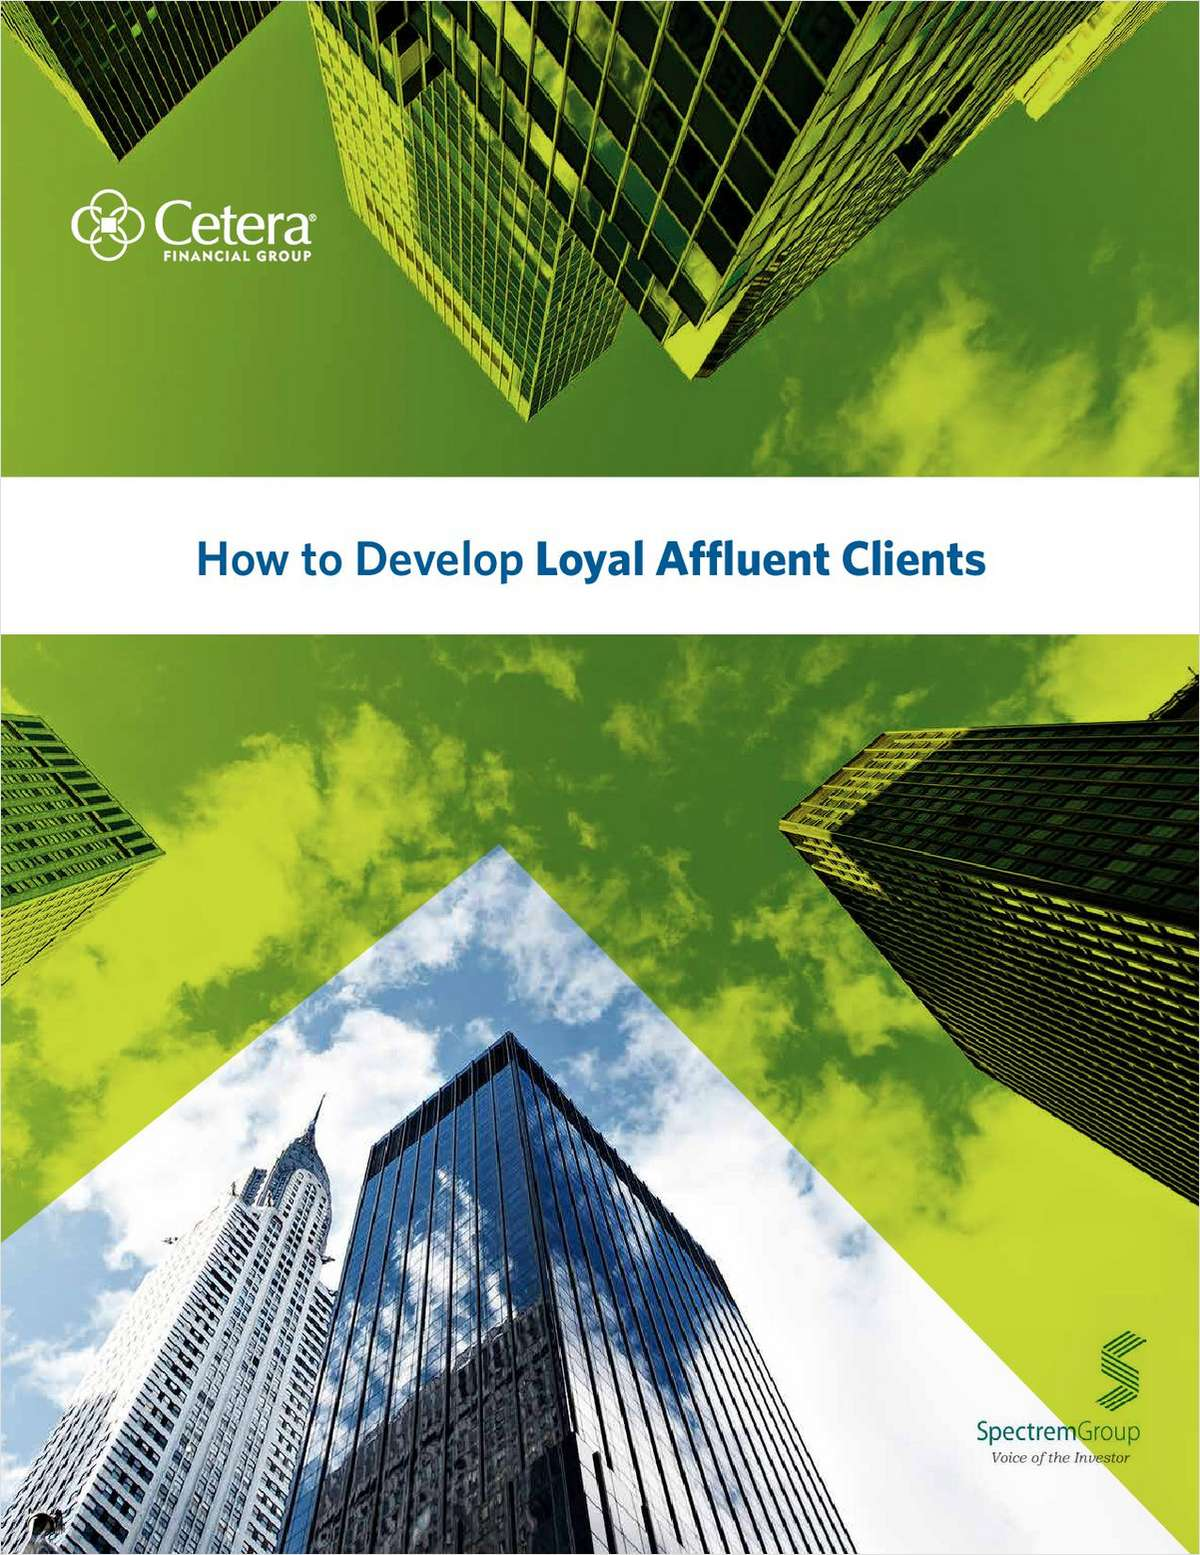 How to Develop Loyal Affluent Clients